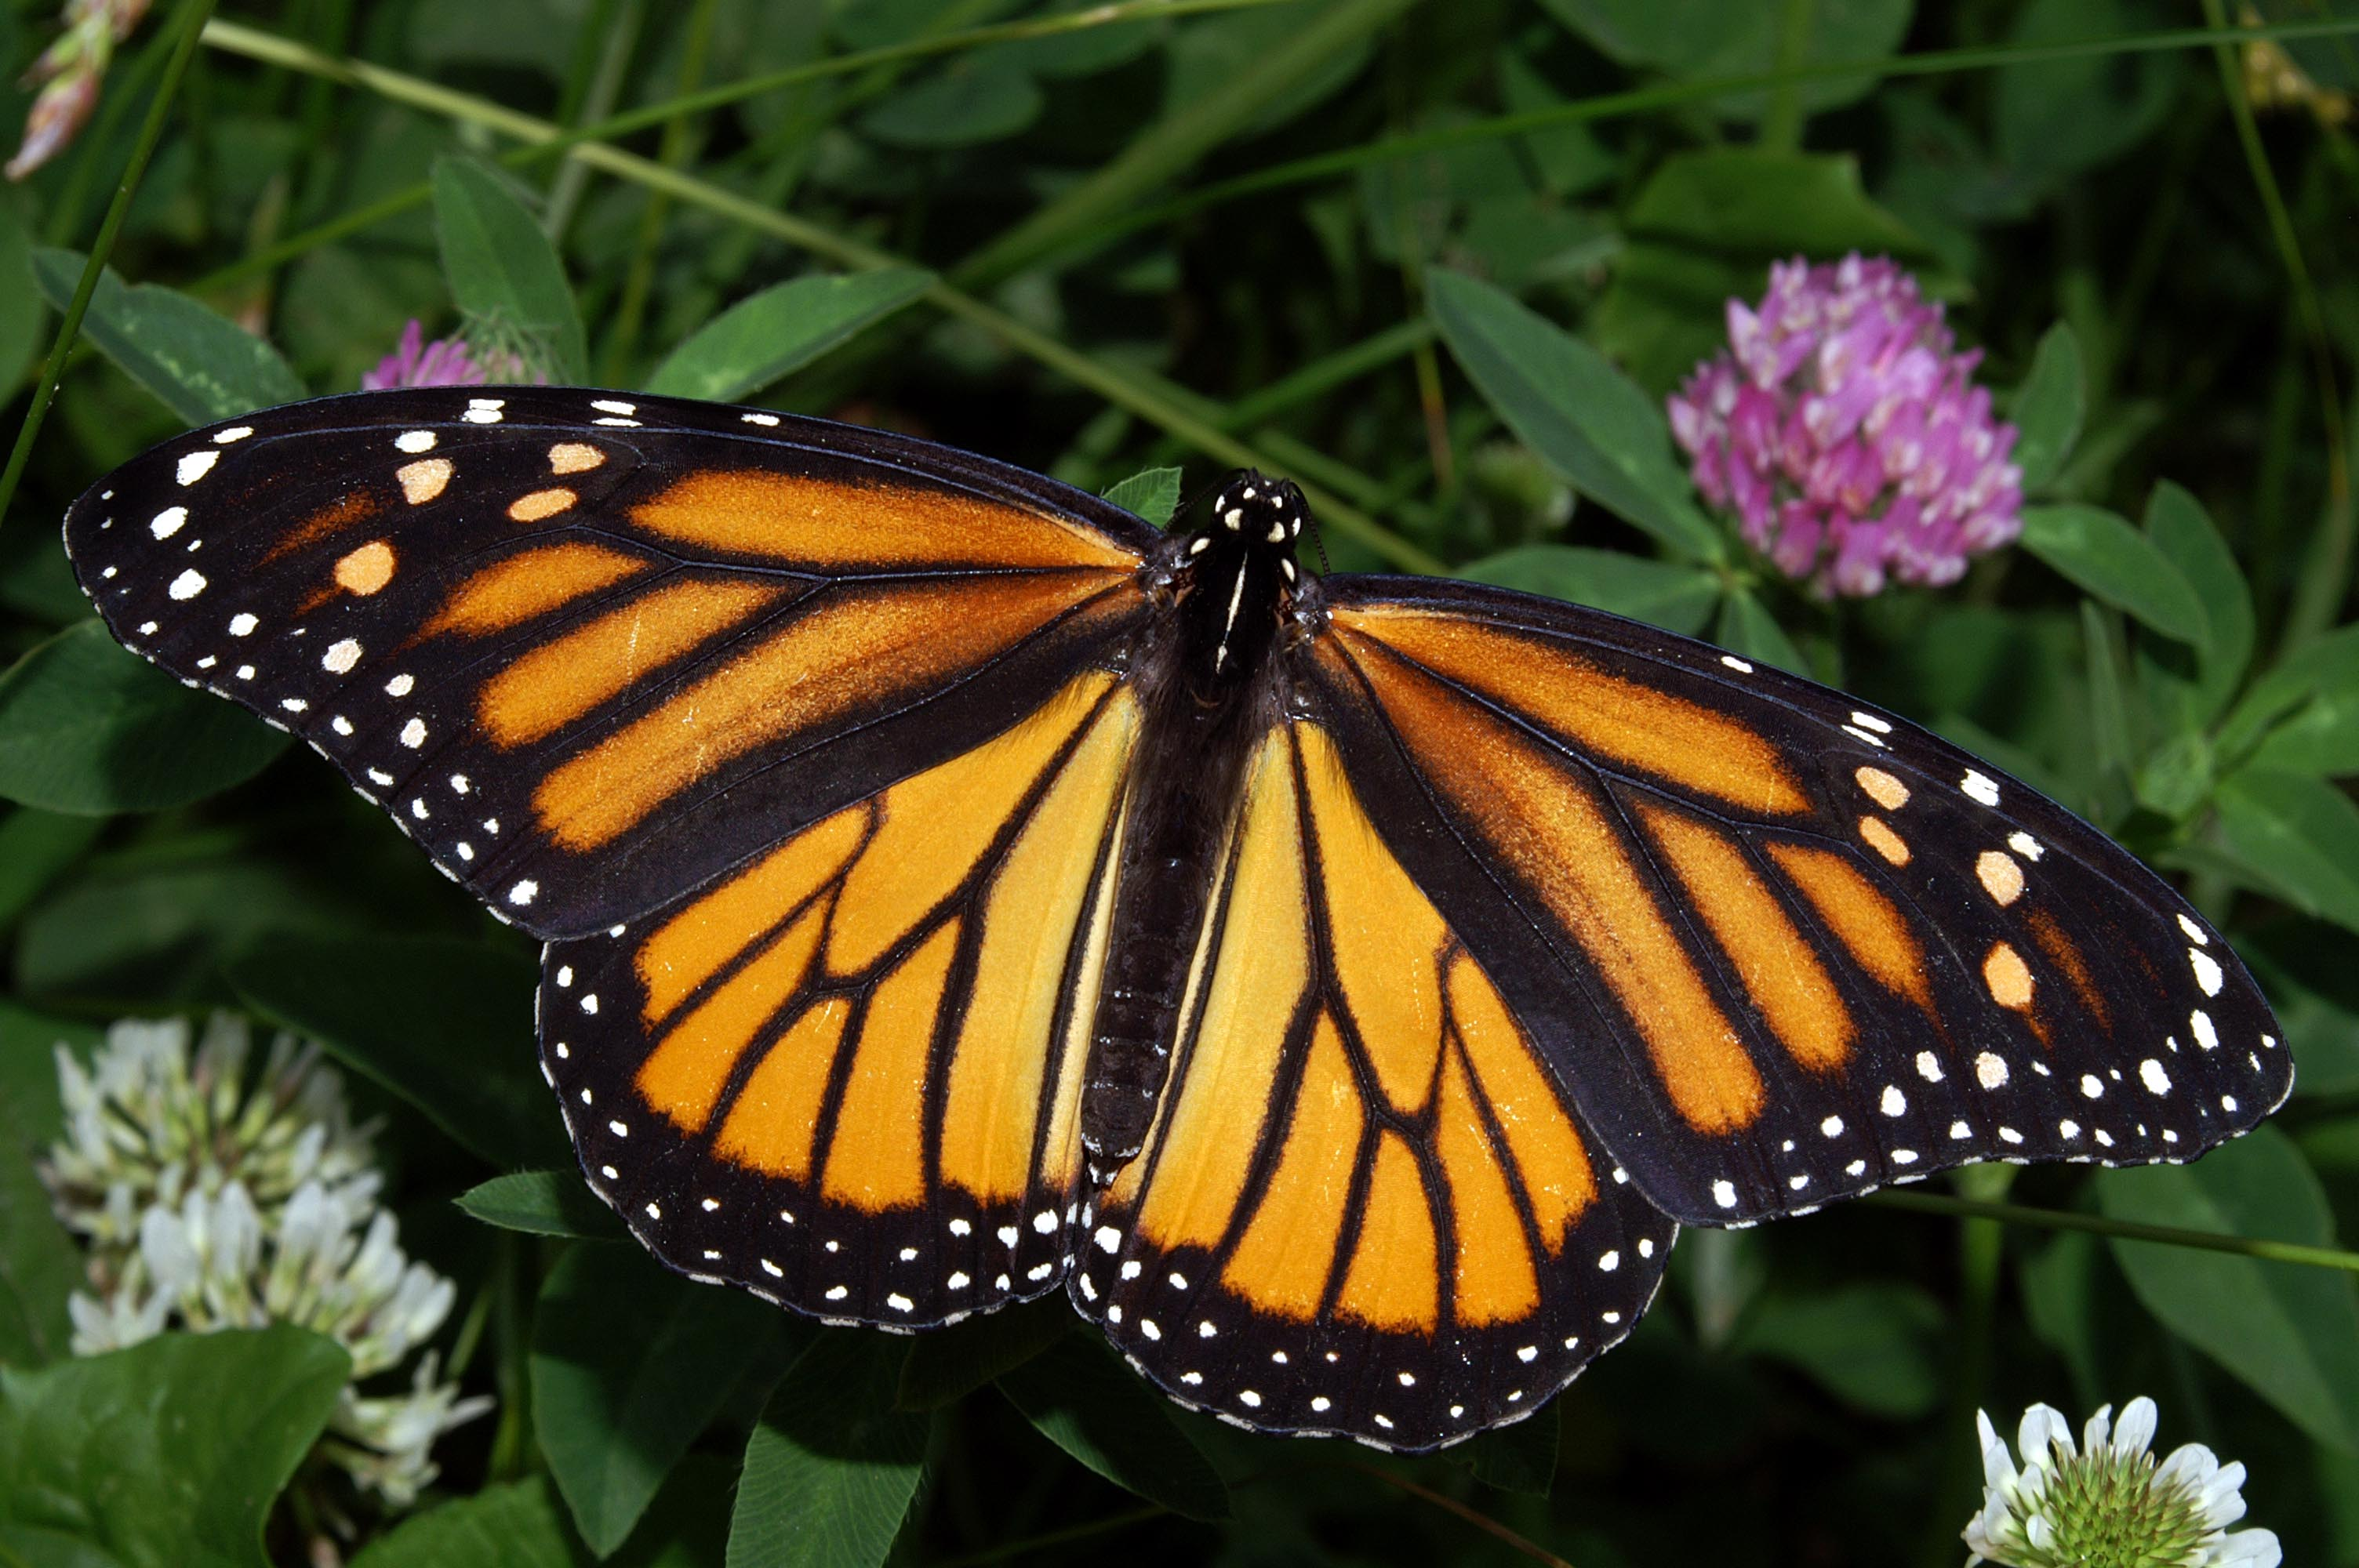 File:Monarch In May.jpg - Wikipedia, the free encyclopedia